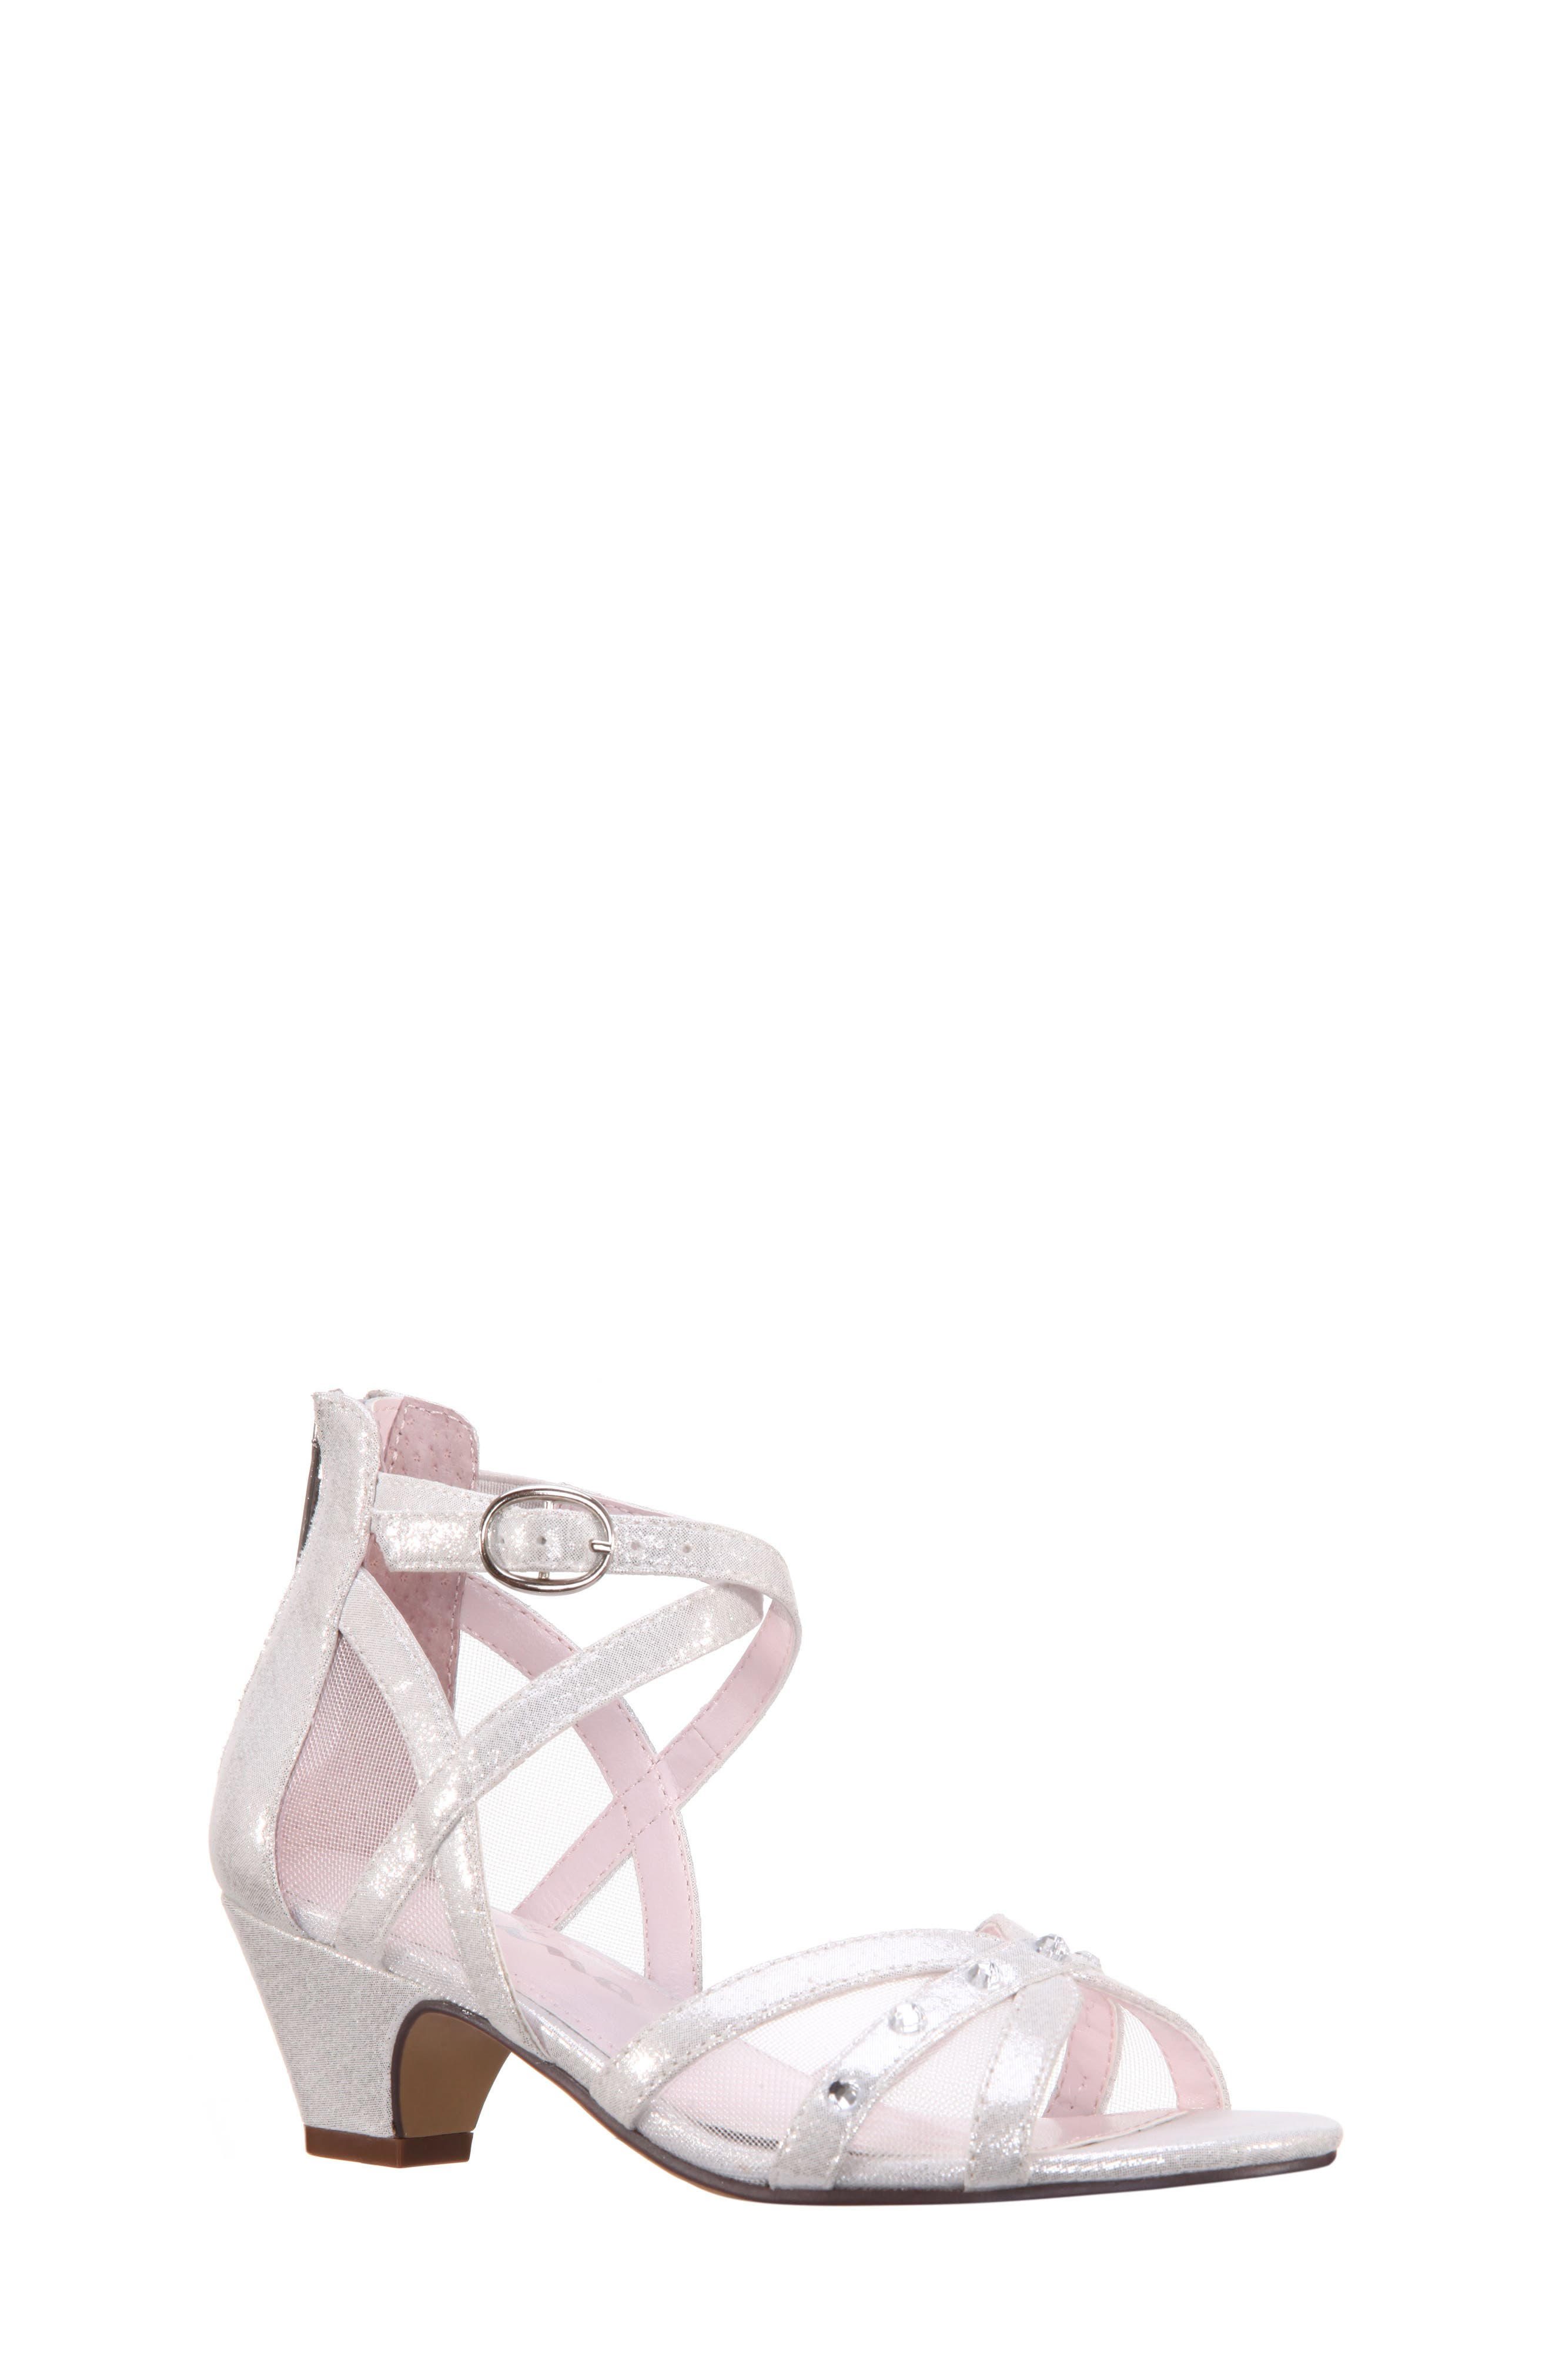 Betty Sandal,                         Main,                         color,